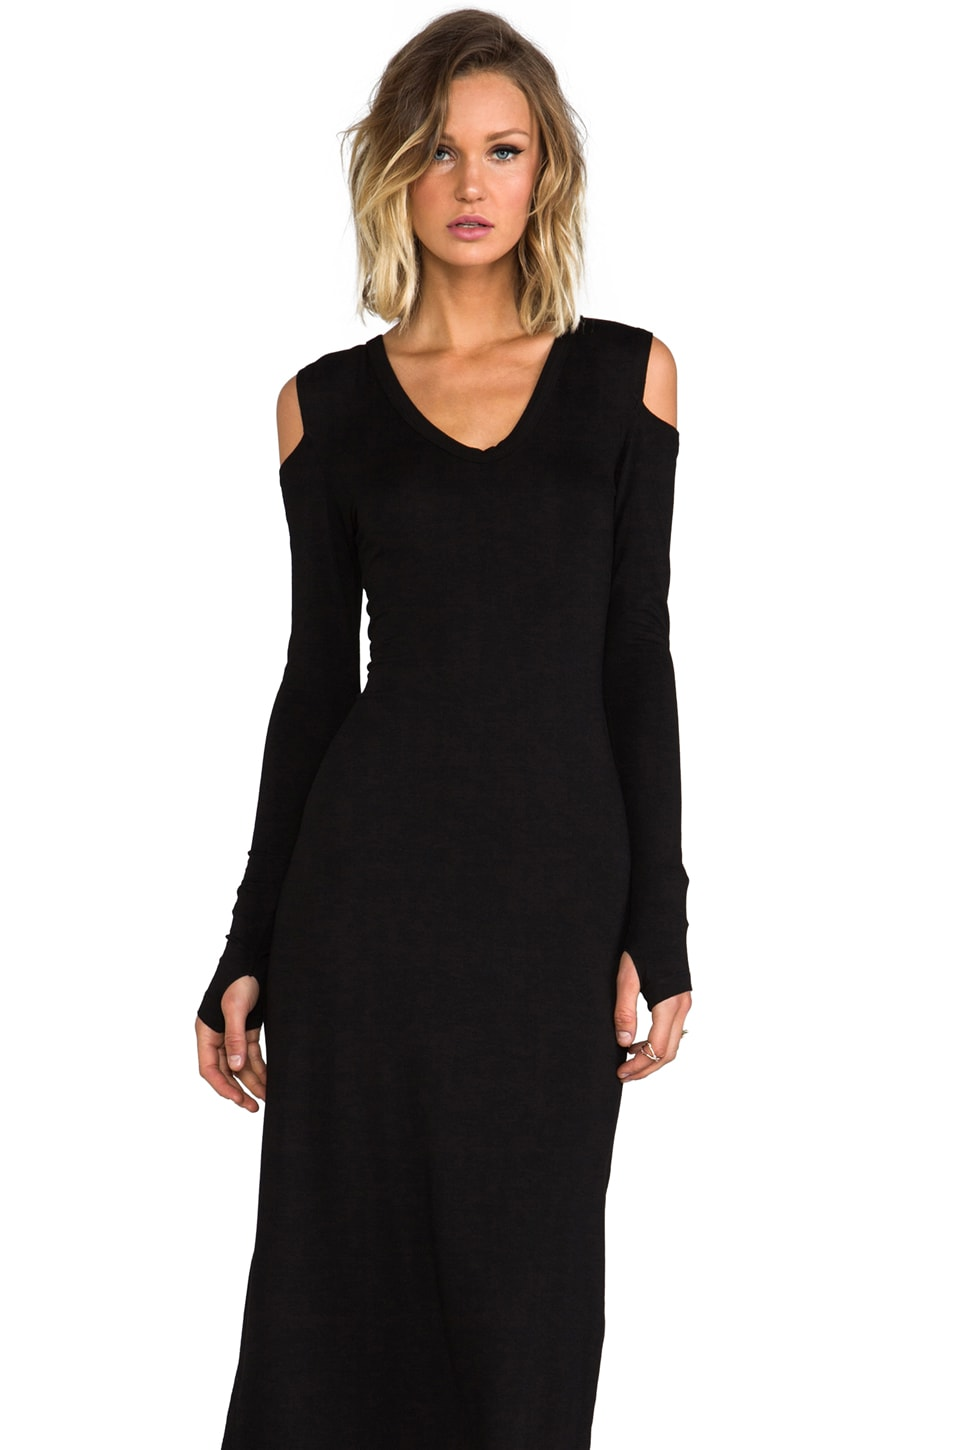 Feel the Piece Celine Dress in Black